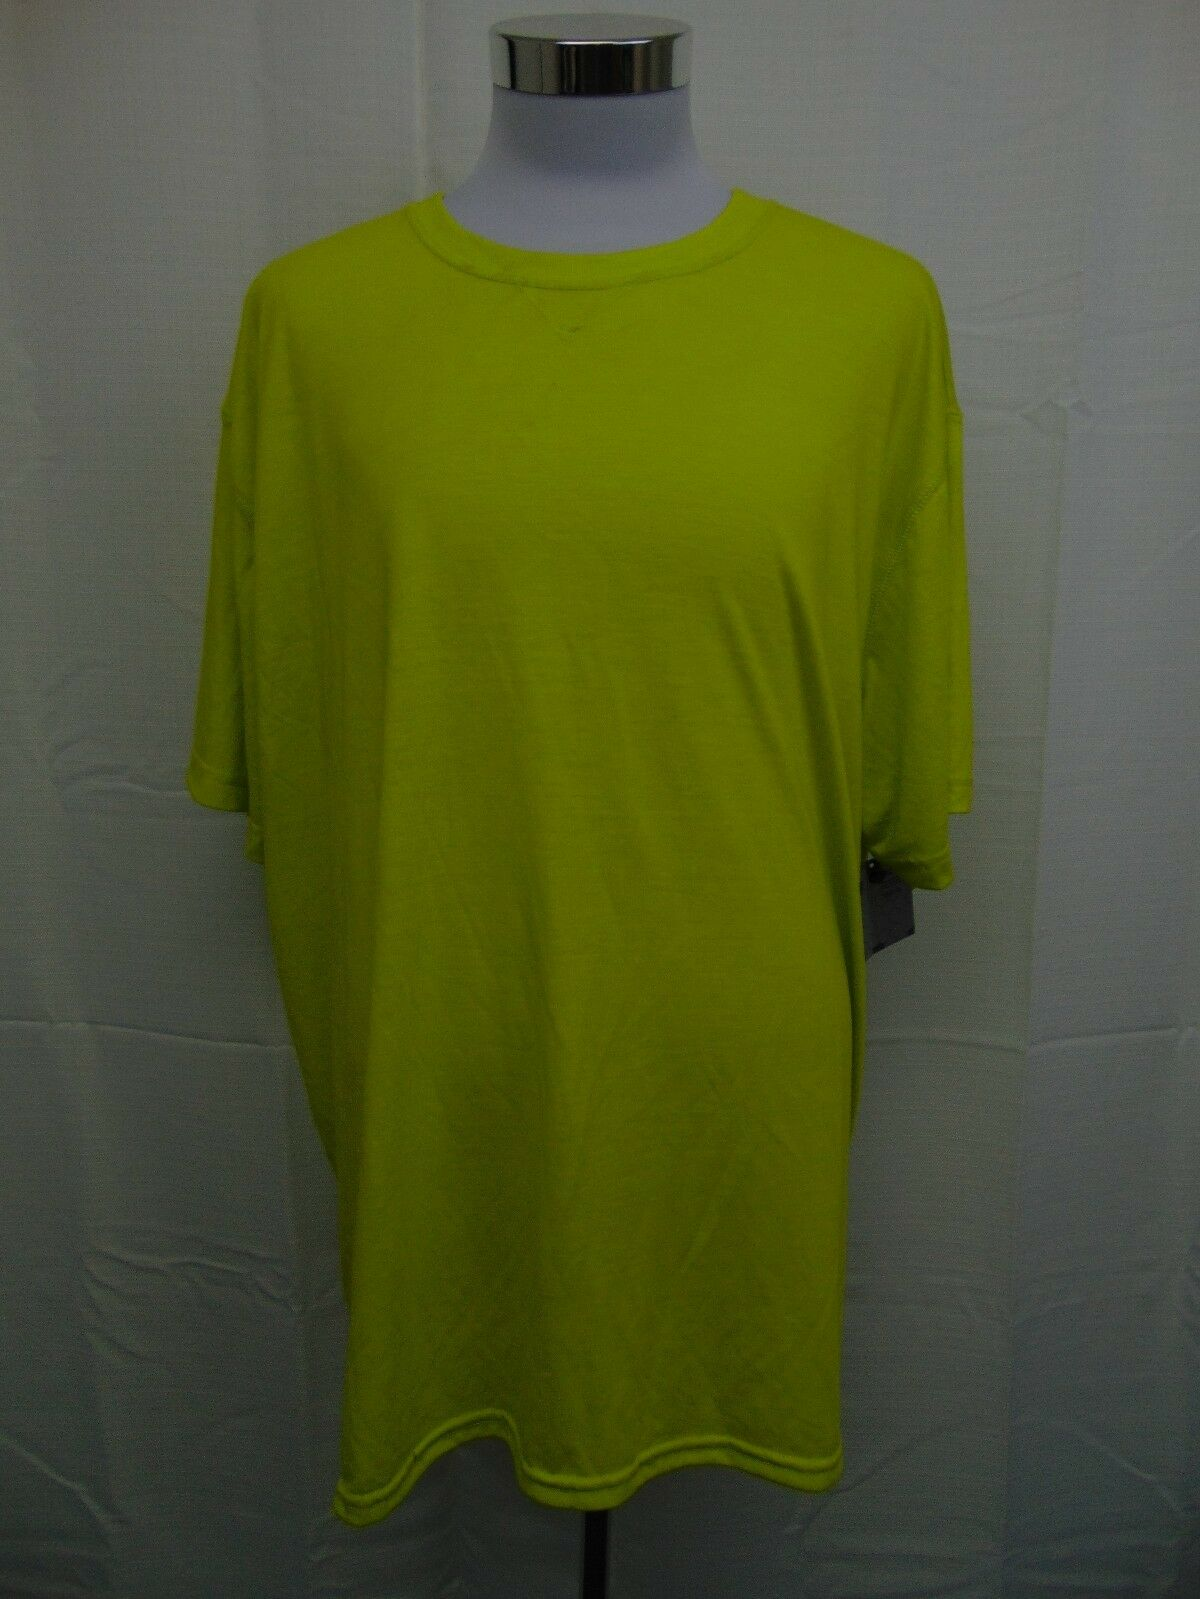 Athletech AT Dri Men's Work Tee Shirt Bright Yellow Green Size 2XL